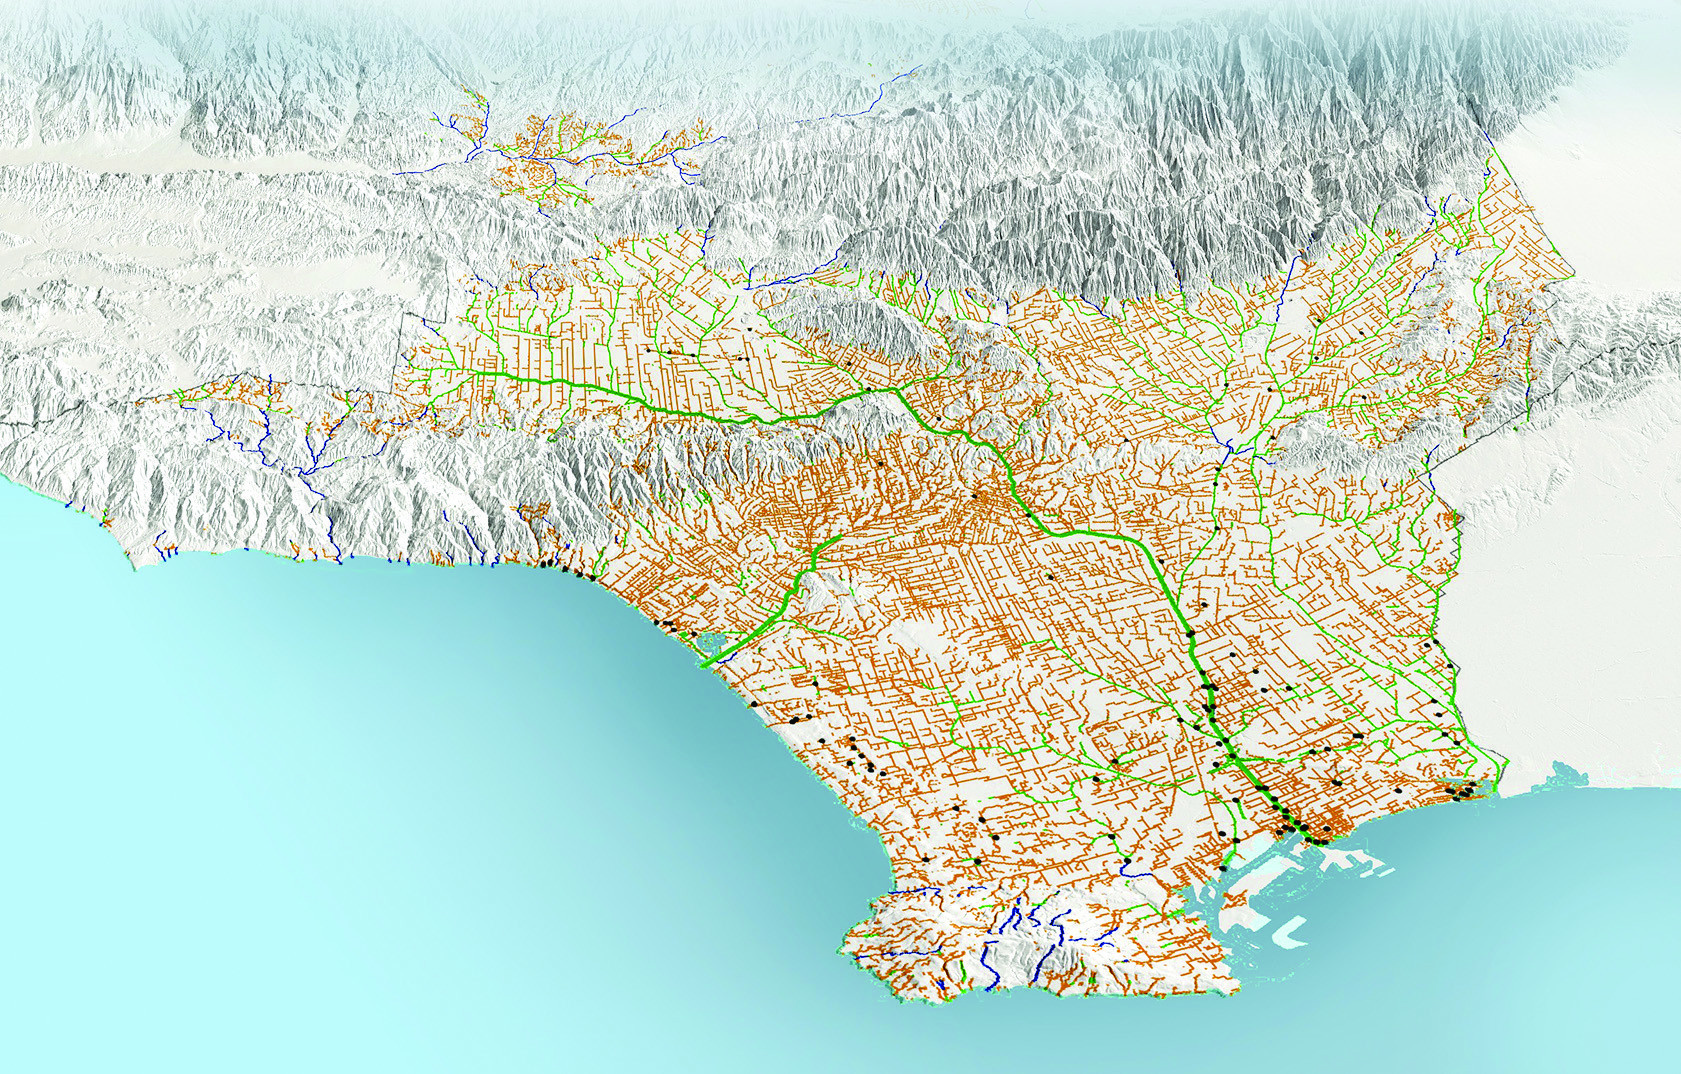 Los Angeles Groundwater USGS CA Water Science Center Los Angeles - Los angeles in world map